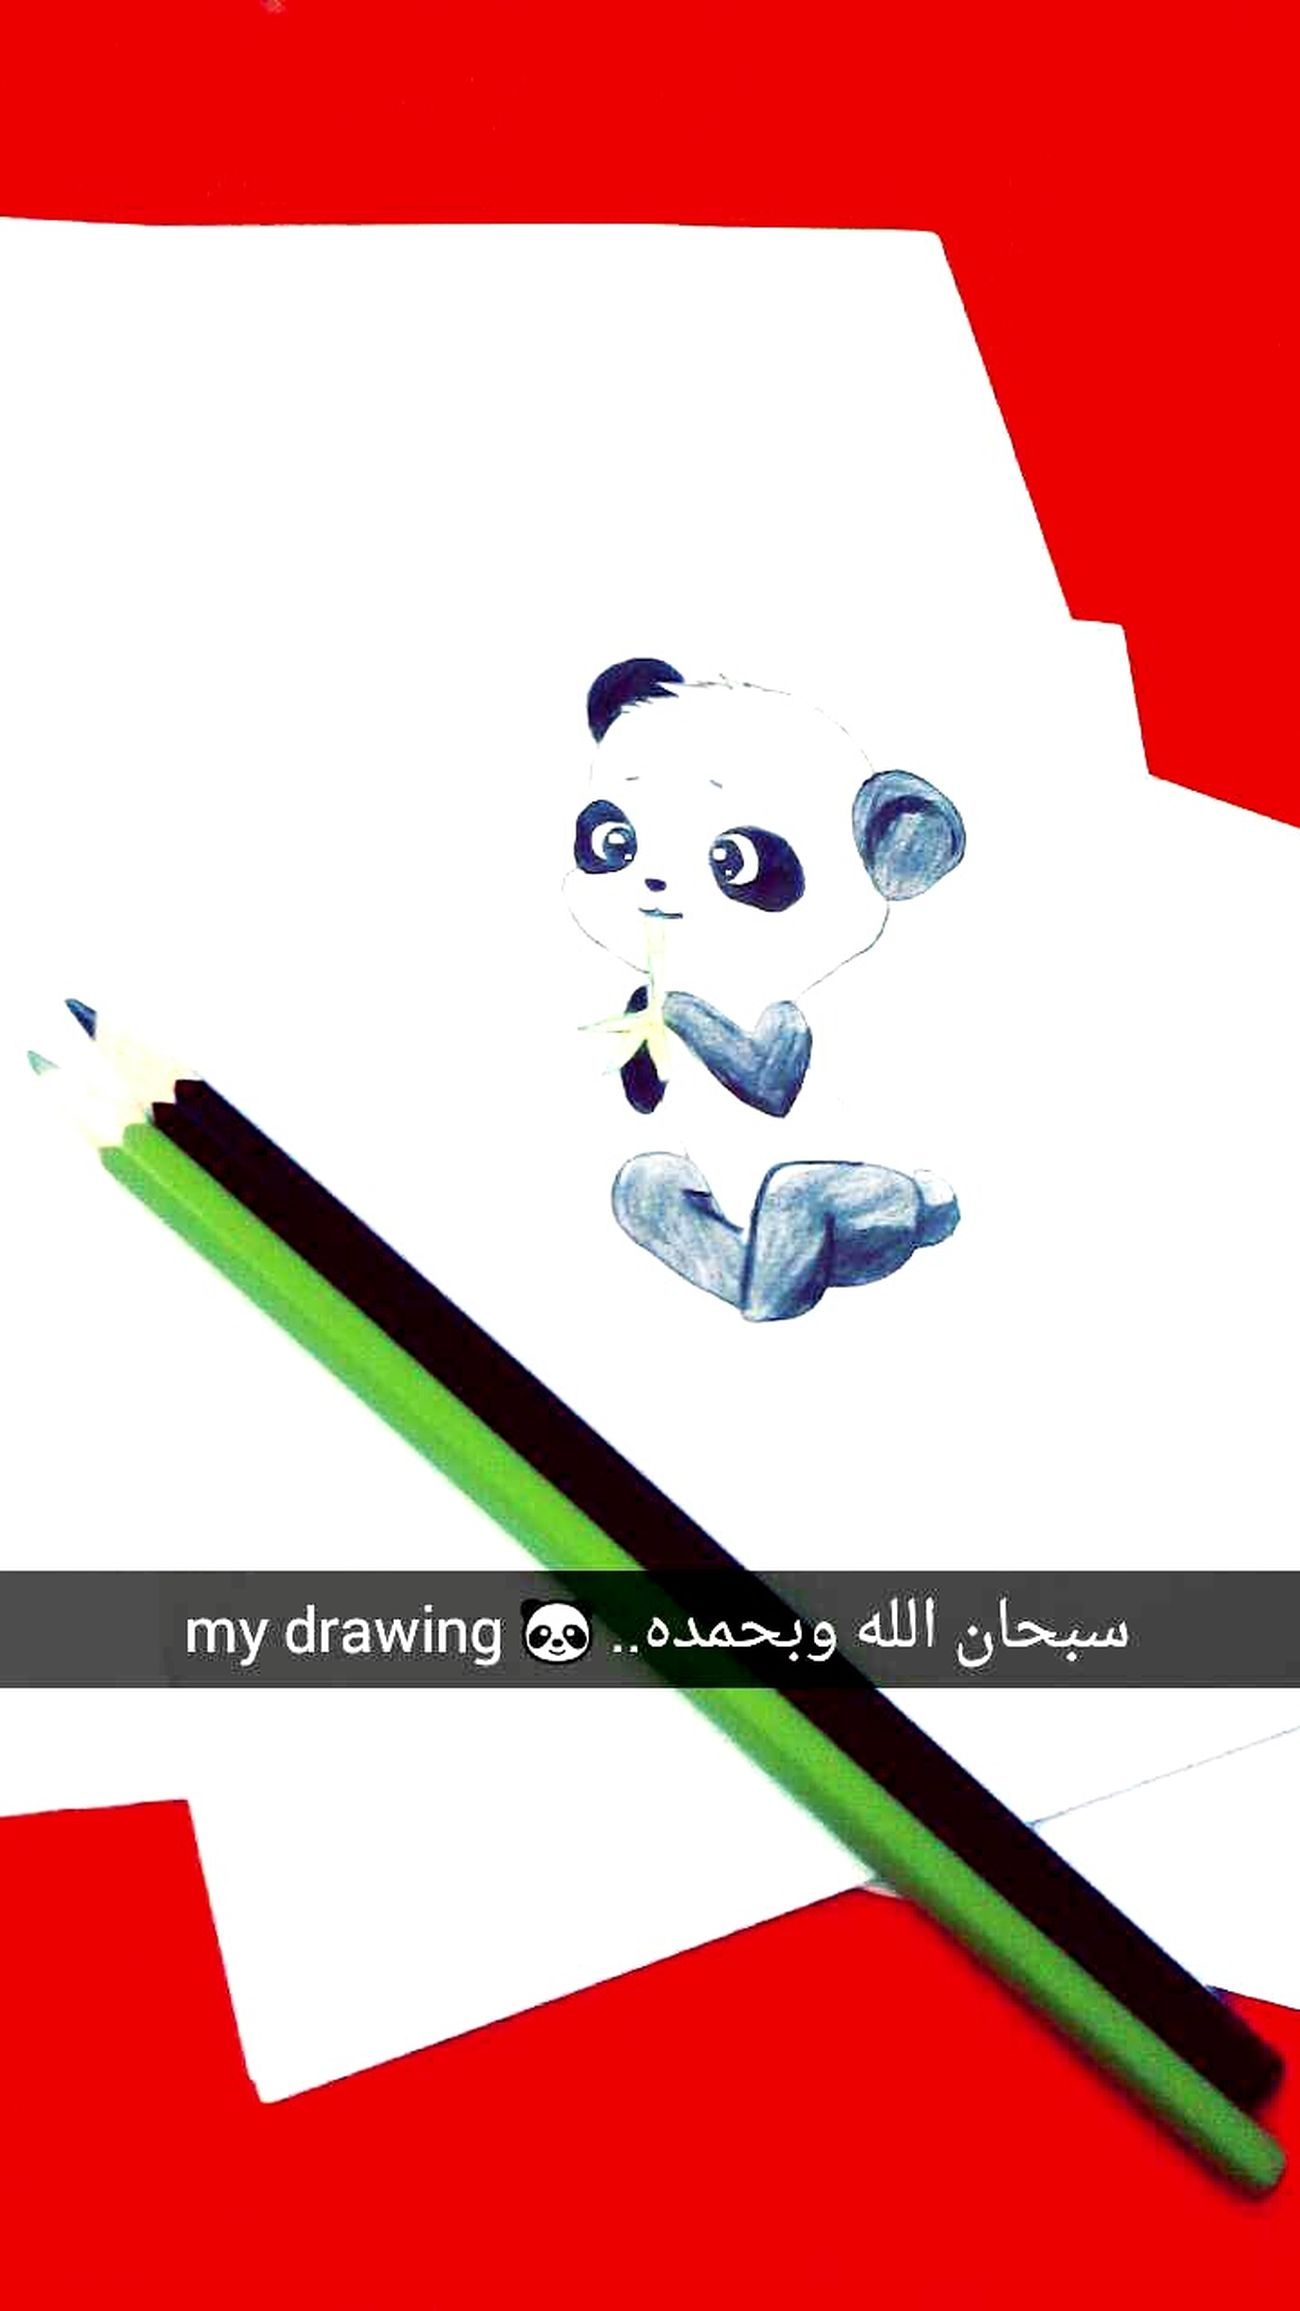 MyDrawing Cute Beutiful Cute♡ رسمتي 🐼✏😍